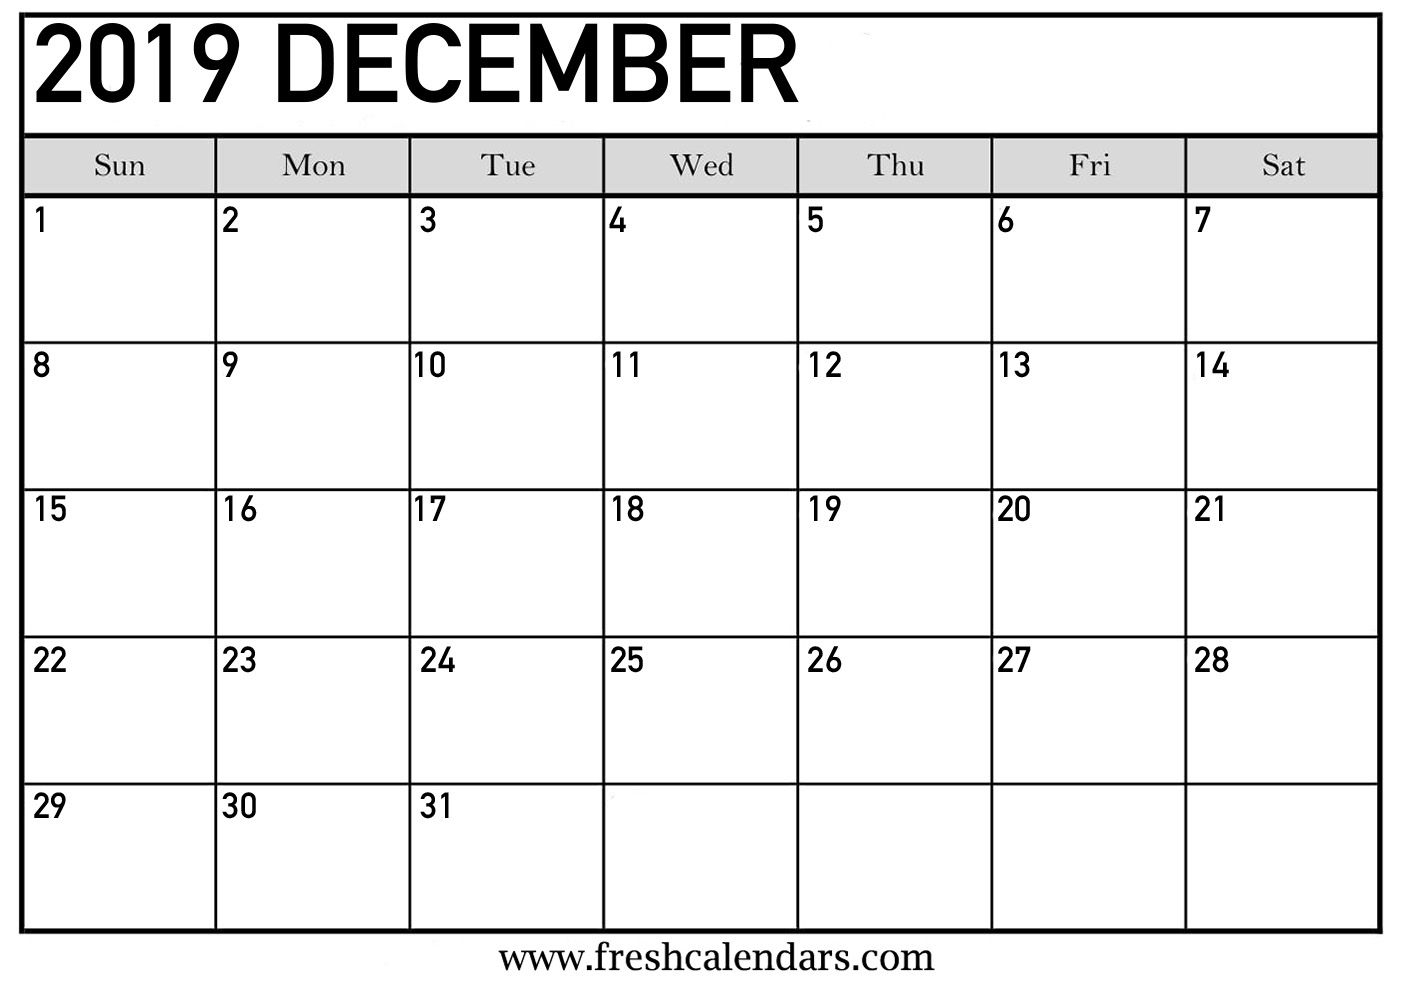 Printable December 2019 Calendar - Fresh Calendars Get | May